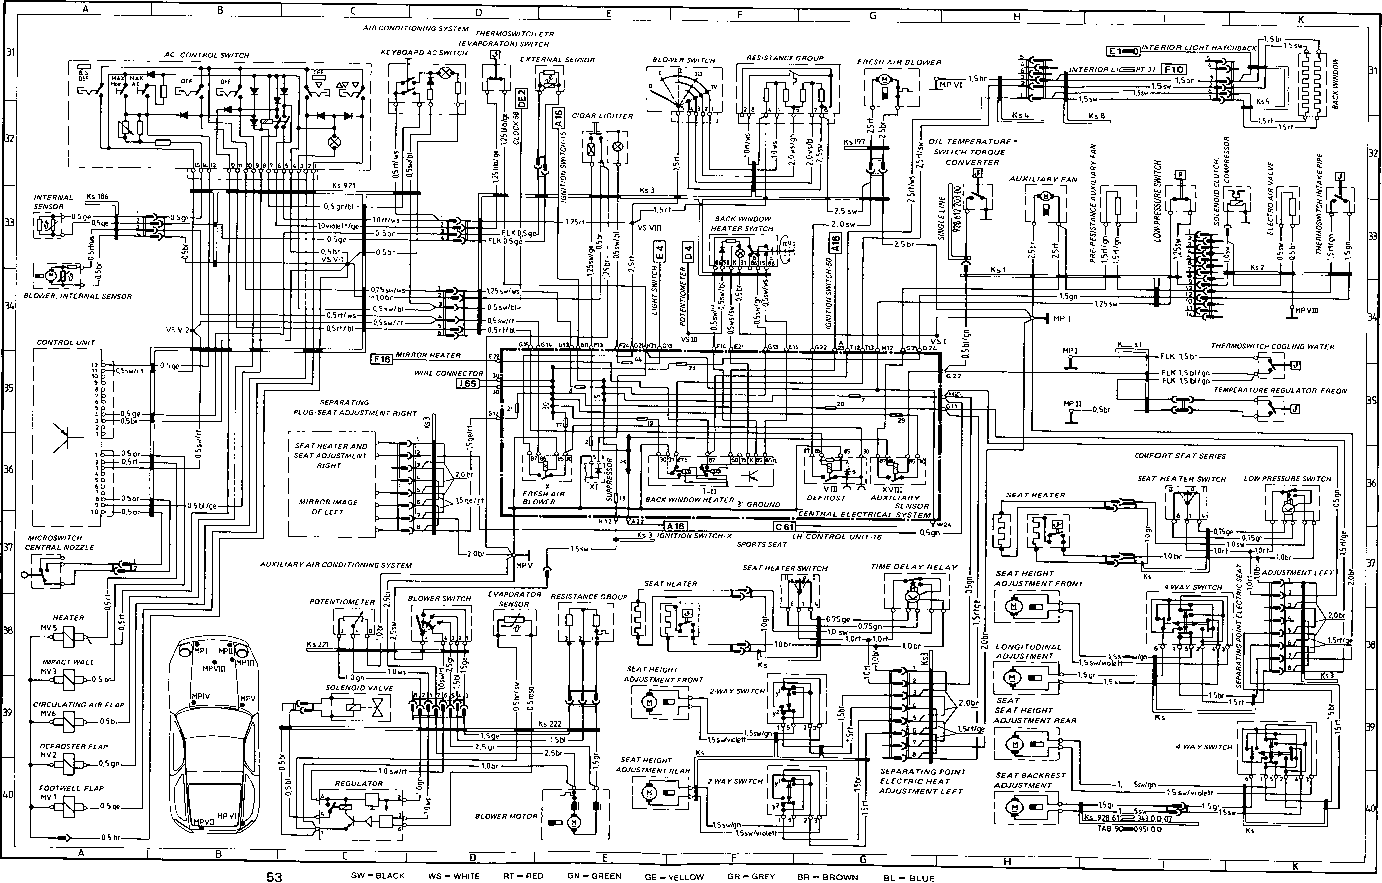 porsche 928 evaporator switch blower - porsche 928 heating, Wiring diagram